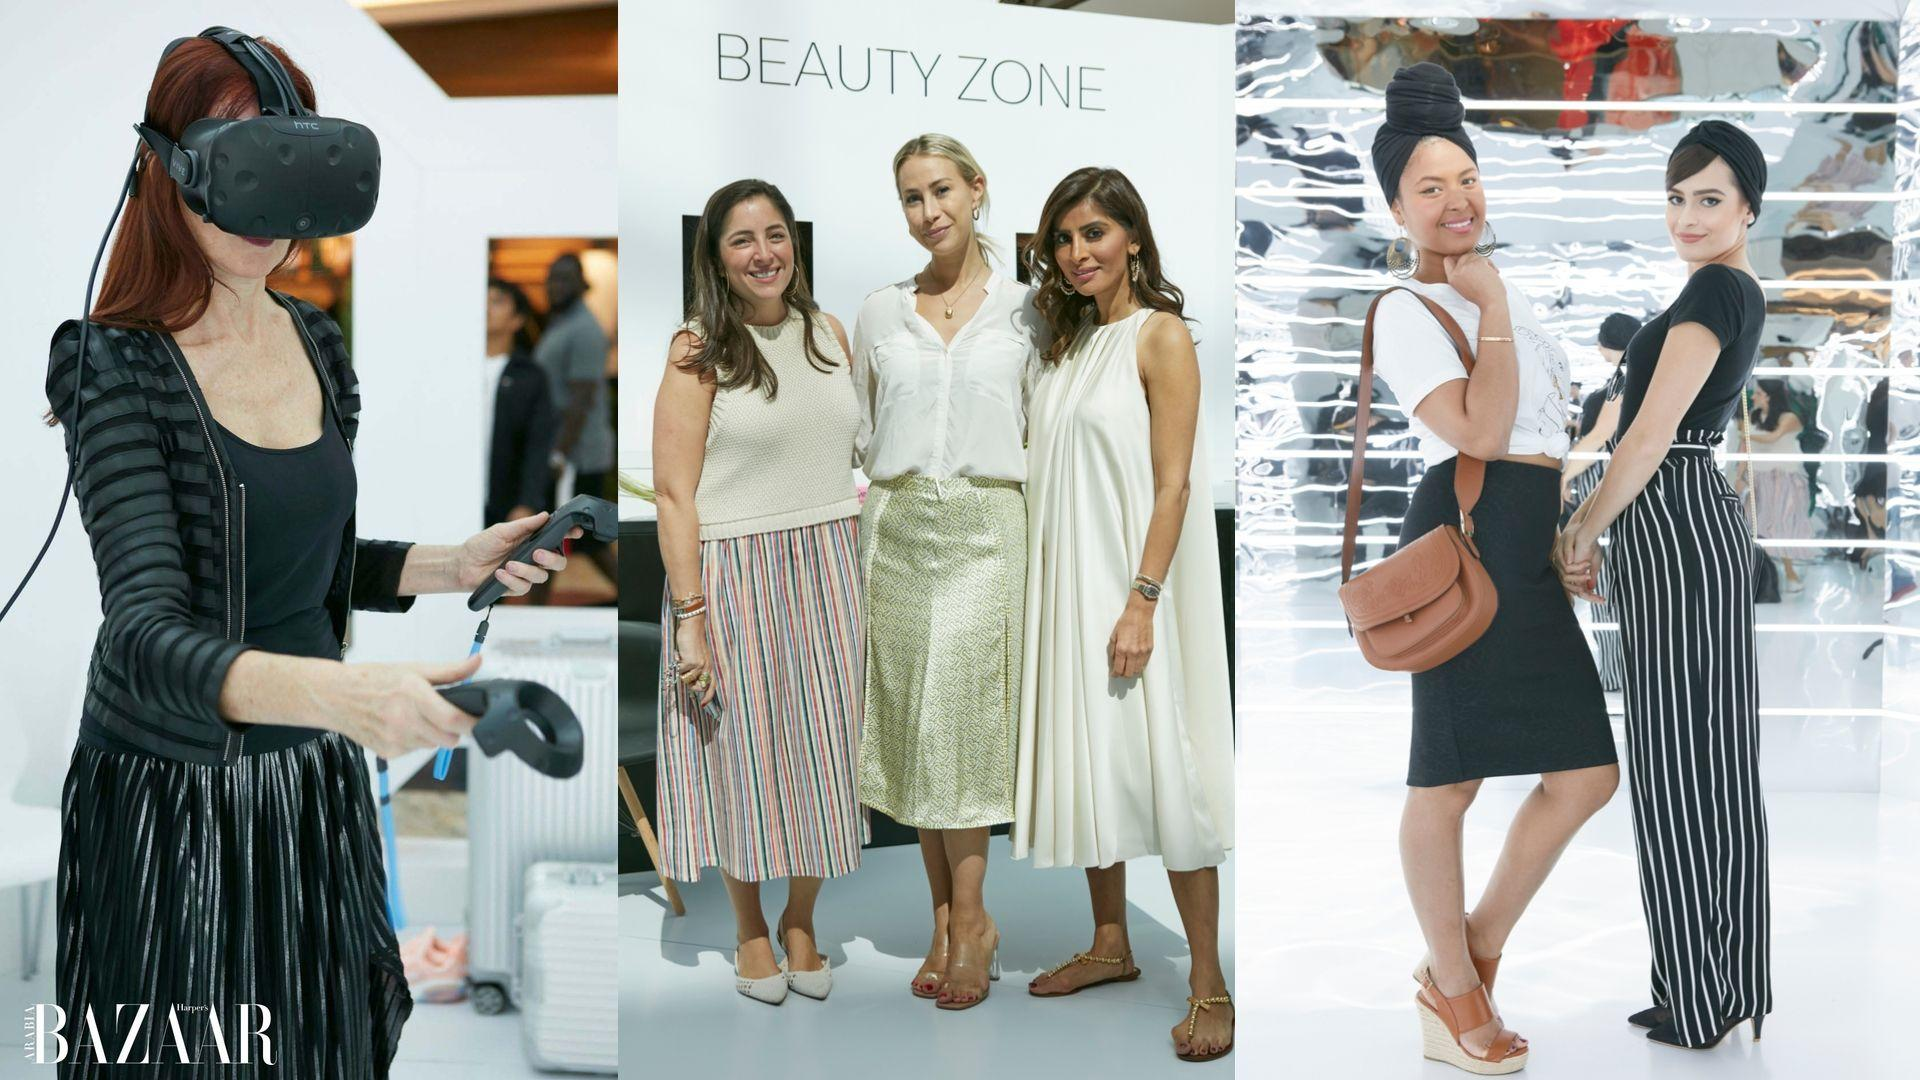 Pictures: All The Highlights From The Second Day Of Bazaar Capsule 2019